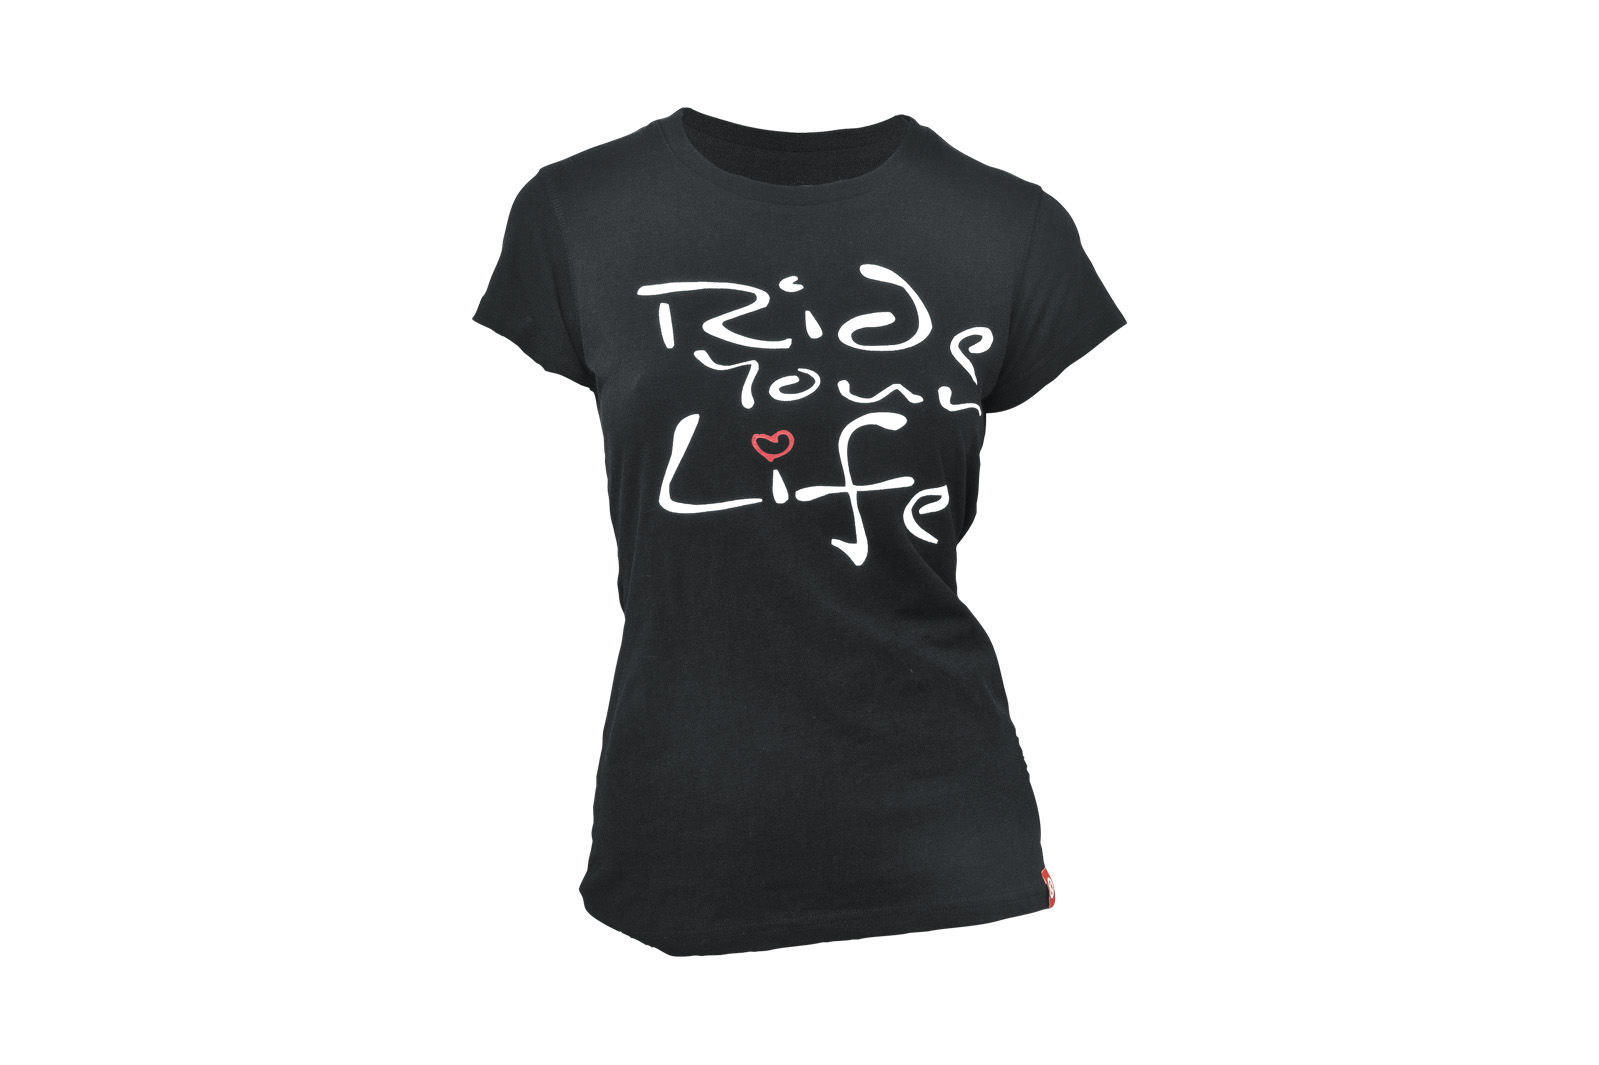 T-Shirt KELLYS WOMEN´S RIDE YOUR LIFE kurzarm Black - L - Mega Handelsgesellschaft